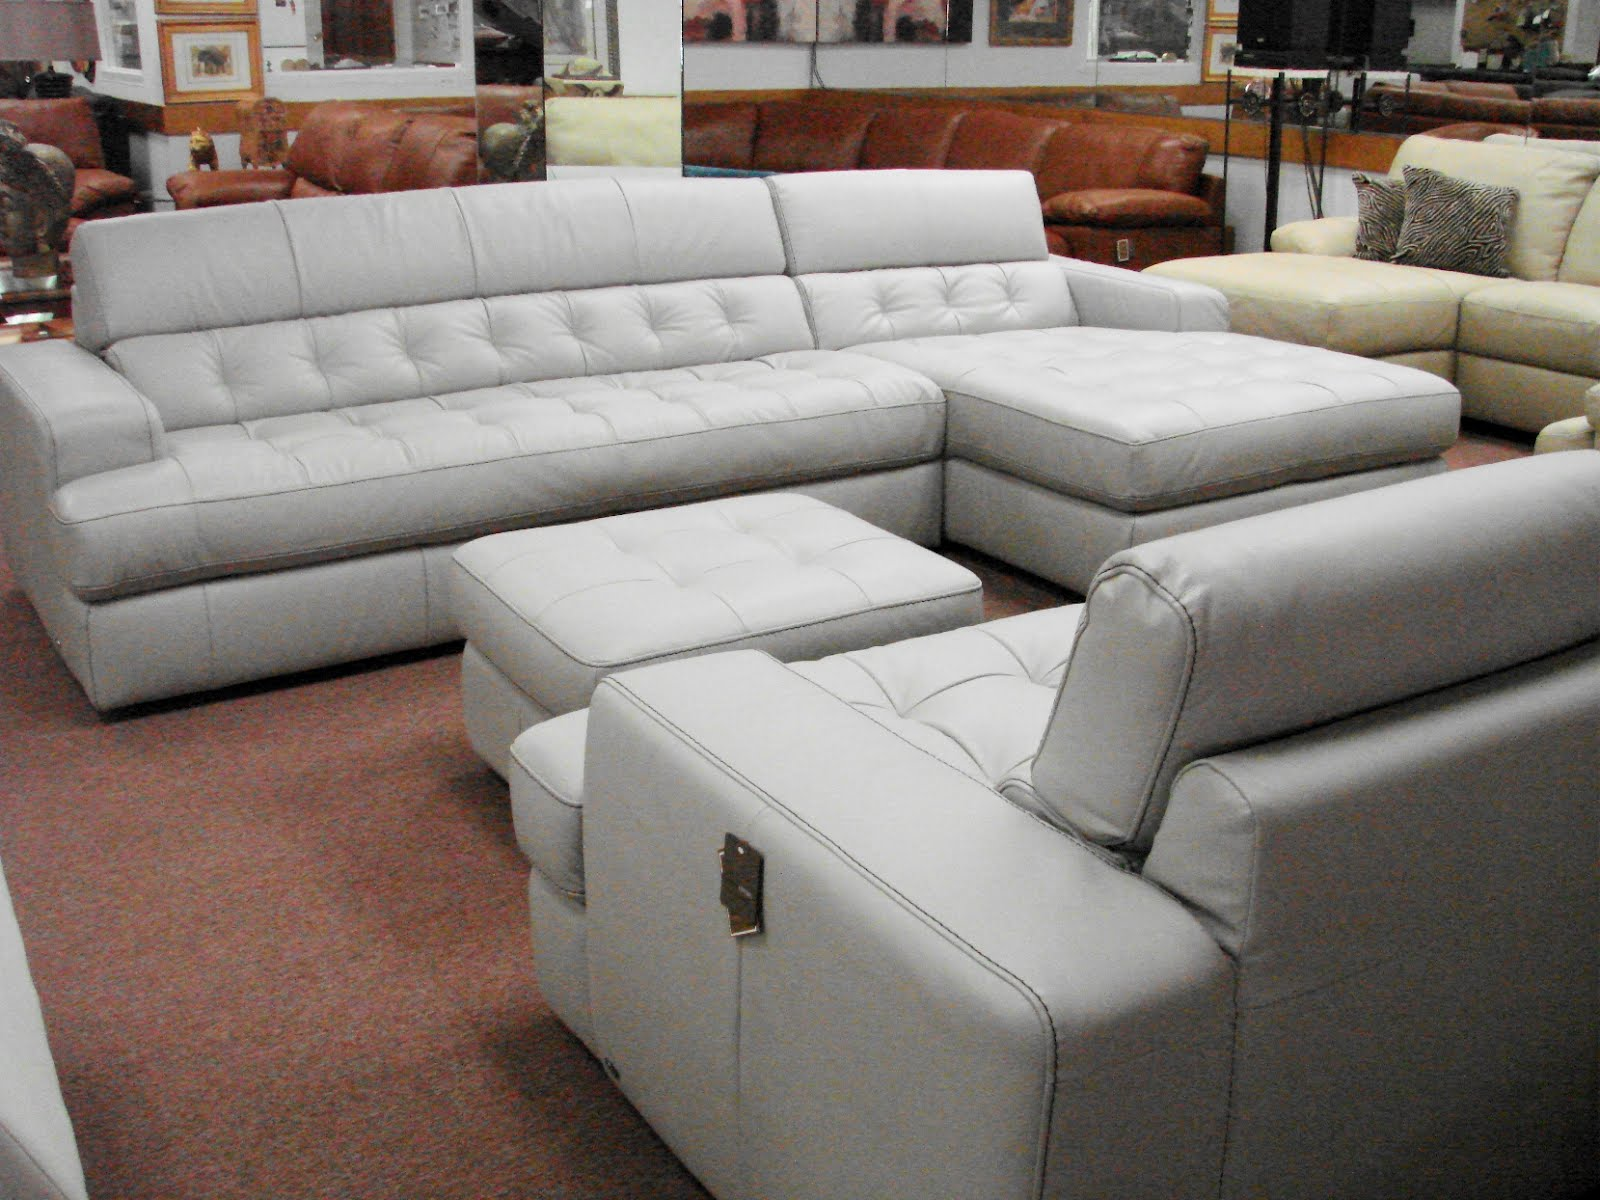 Natuzzi Leather Sofas U0026 Sectionals By Interior Concepts Furniture